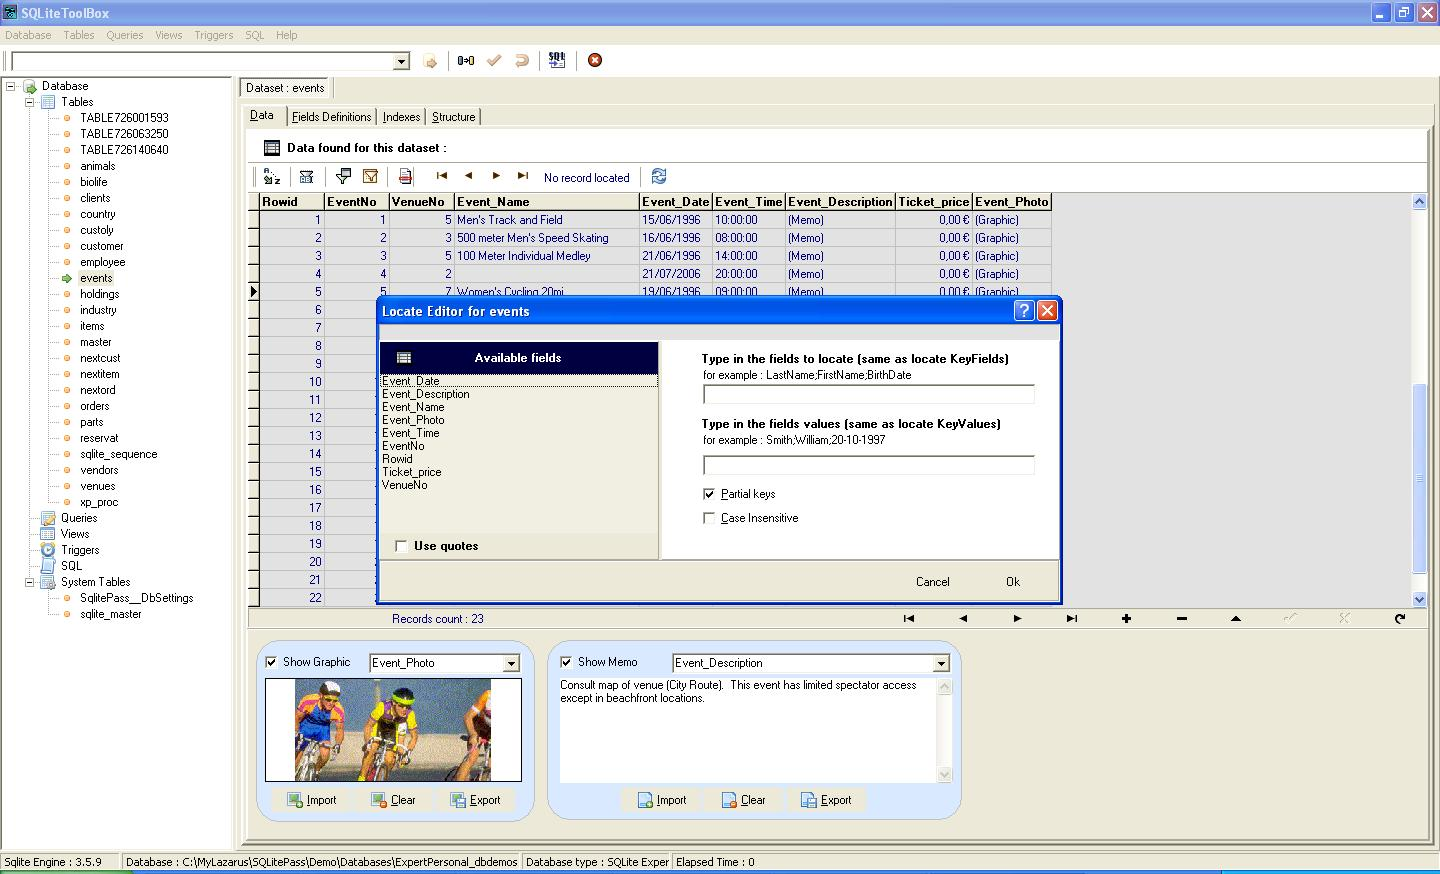 SQLiteToolBox-Windows-Delphi-ScreenShots_2_Version035.jpg